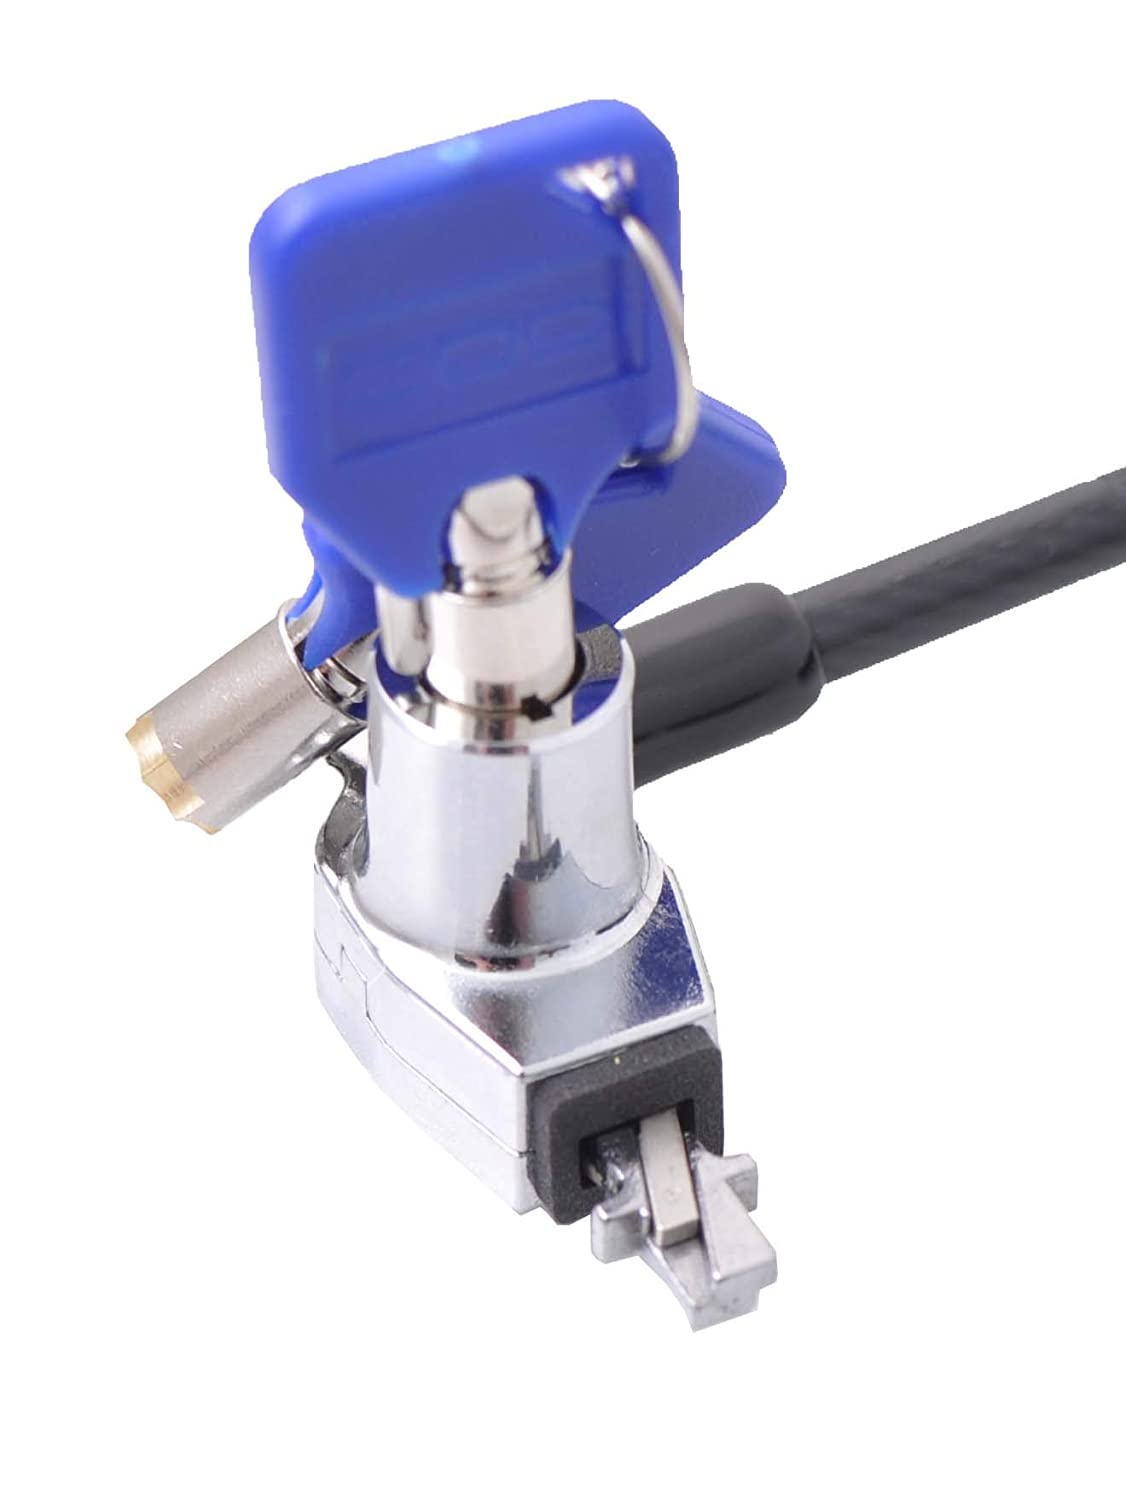 A02040 CODi Bilateral Key Cable Lock Keep Your Laptop Secure Through The Wedge Lock Slot